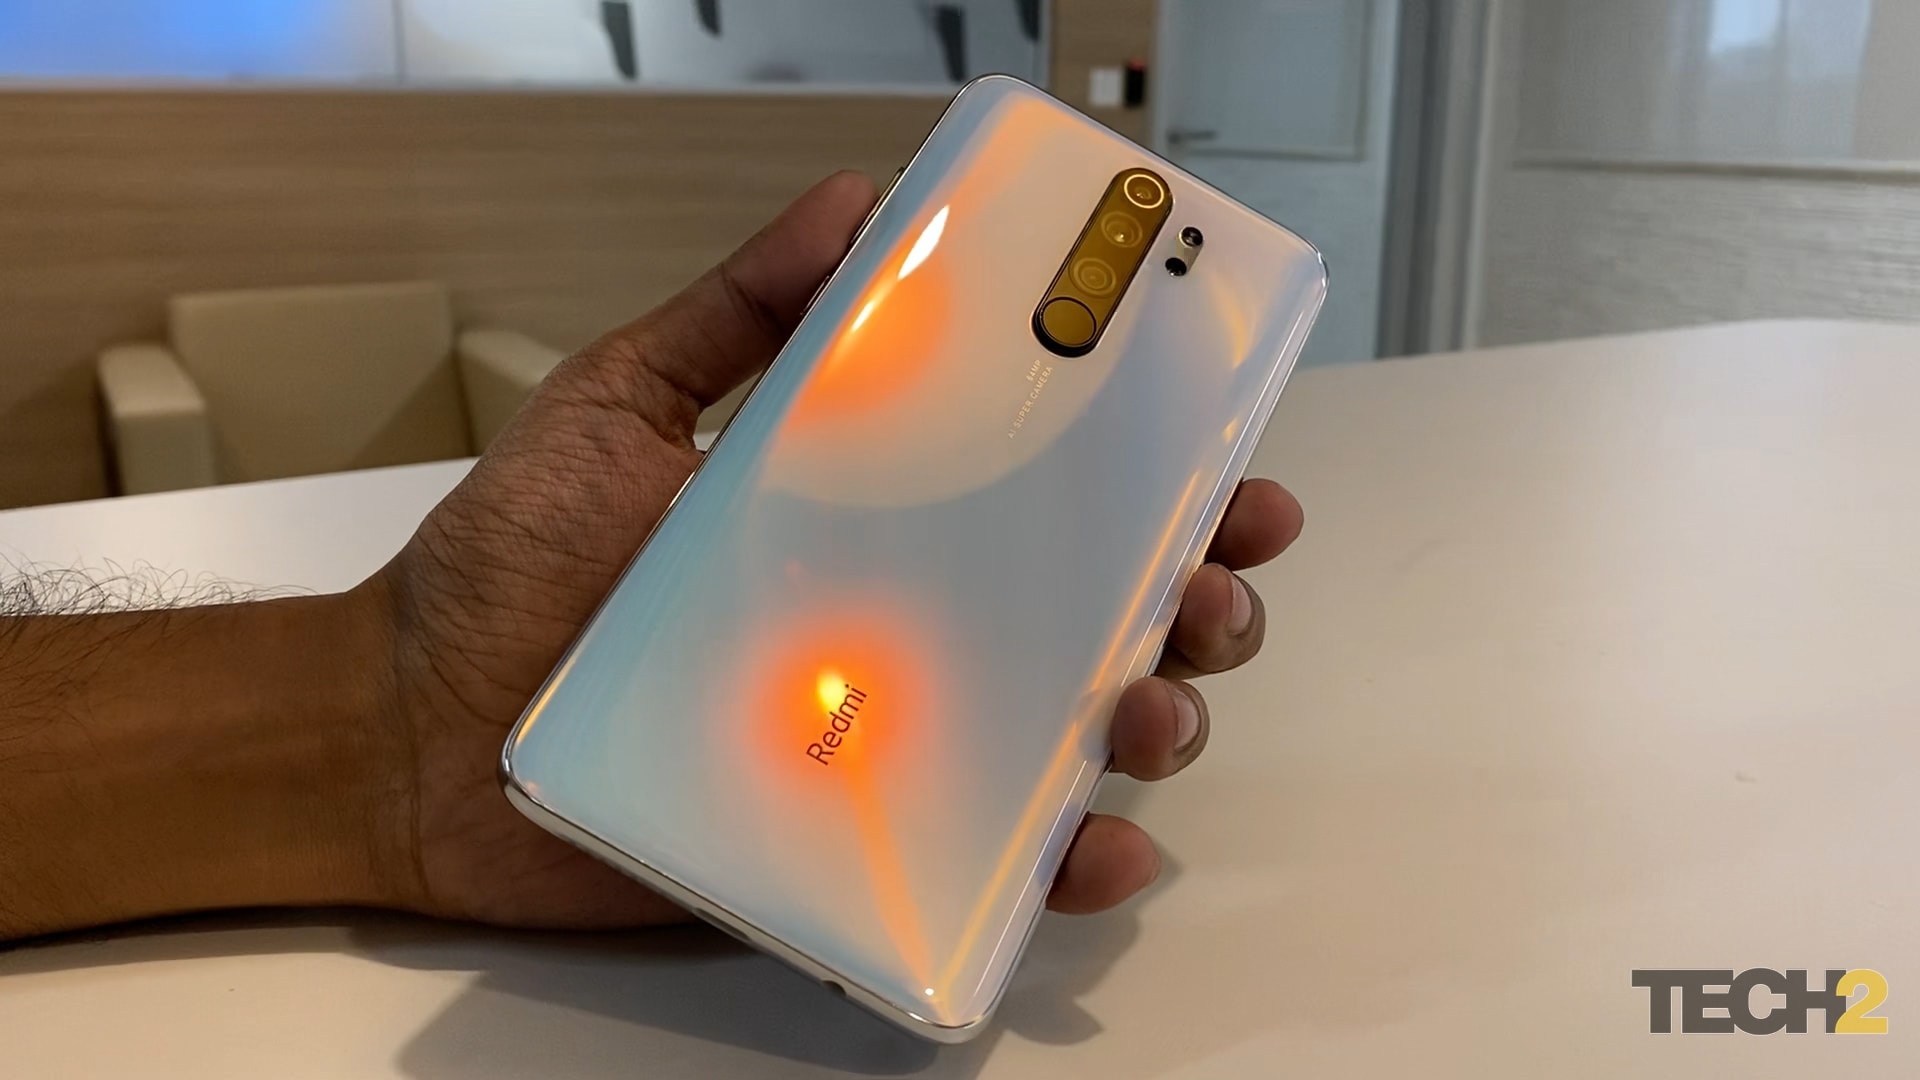 Redmi Note 8 Pro back comes with a dual-tone finish. Image: tech2